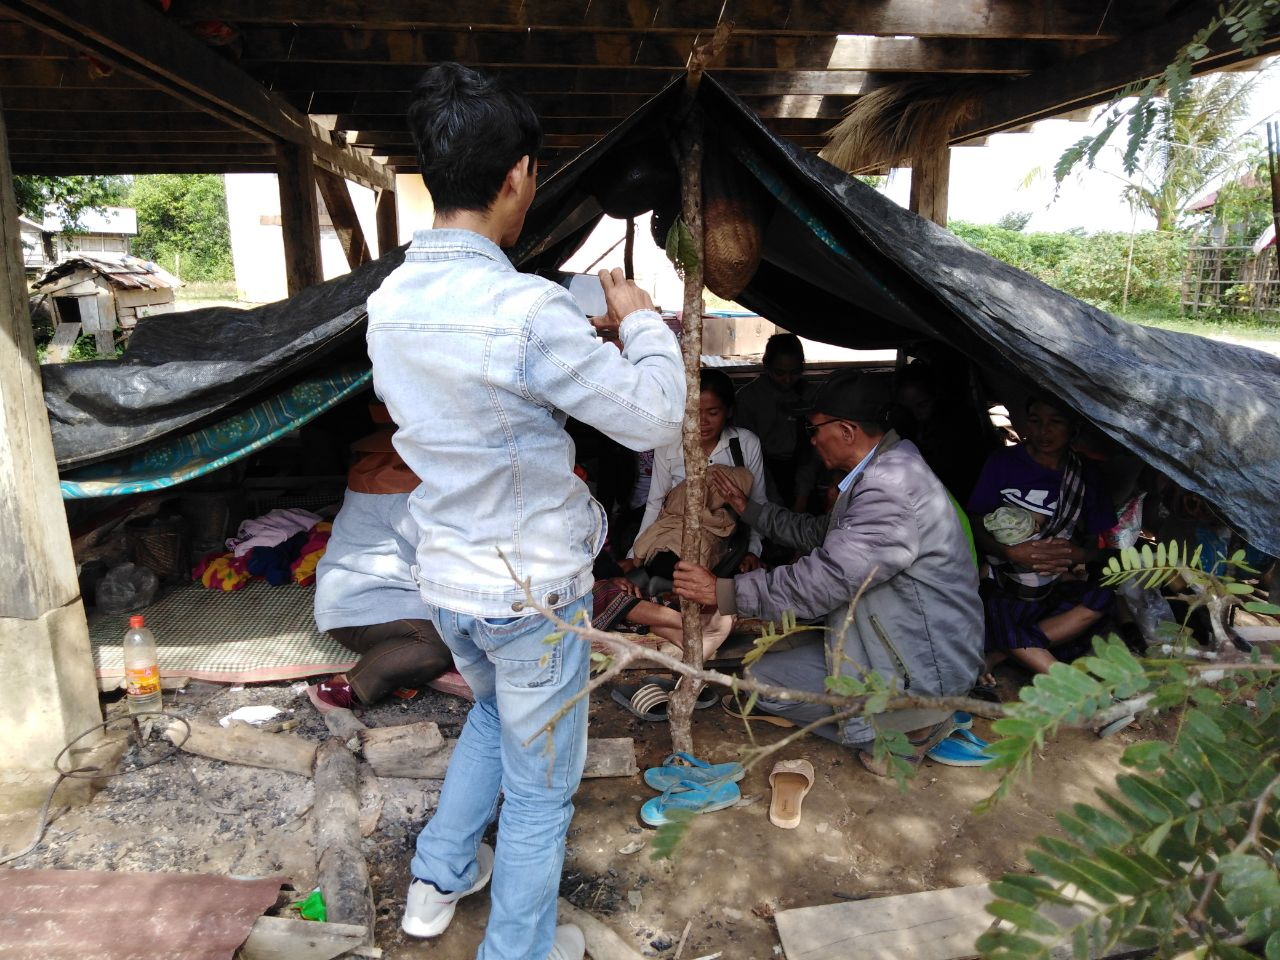 The header photo shows Christians in Laos who had their houses torn down by local authorities. (Photo courtesy of Asian Access)